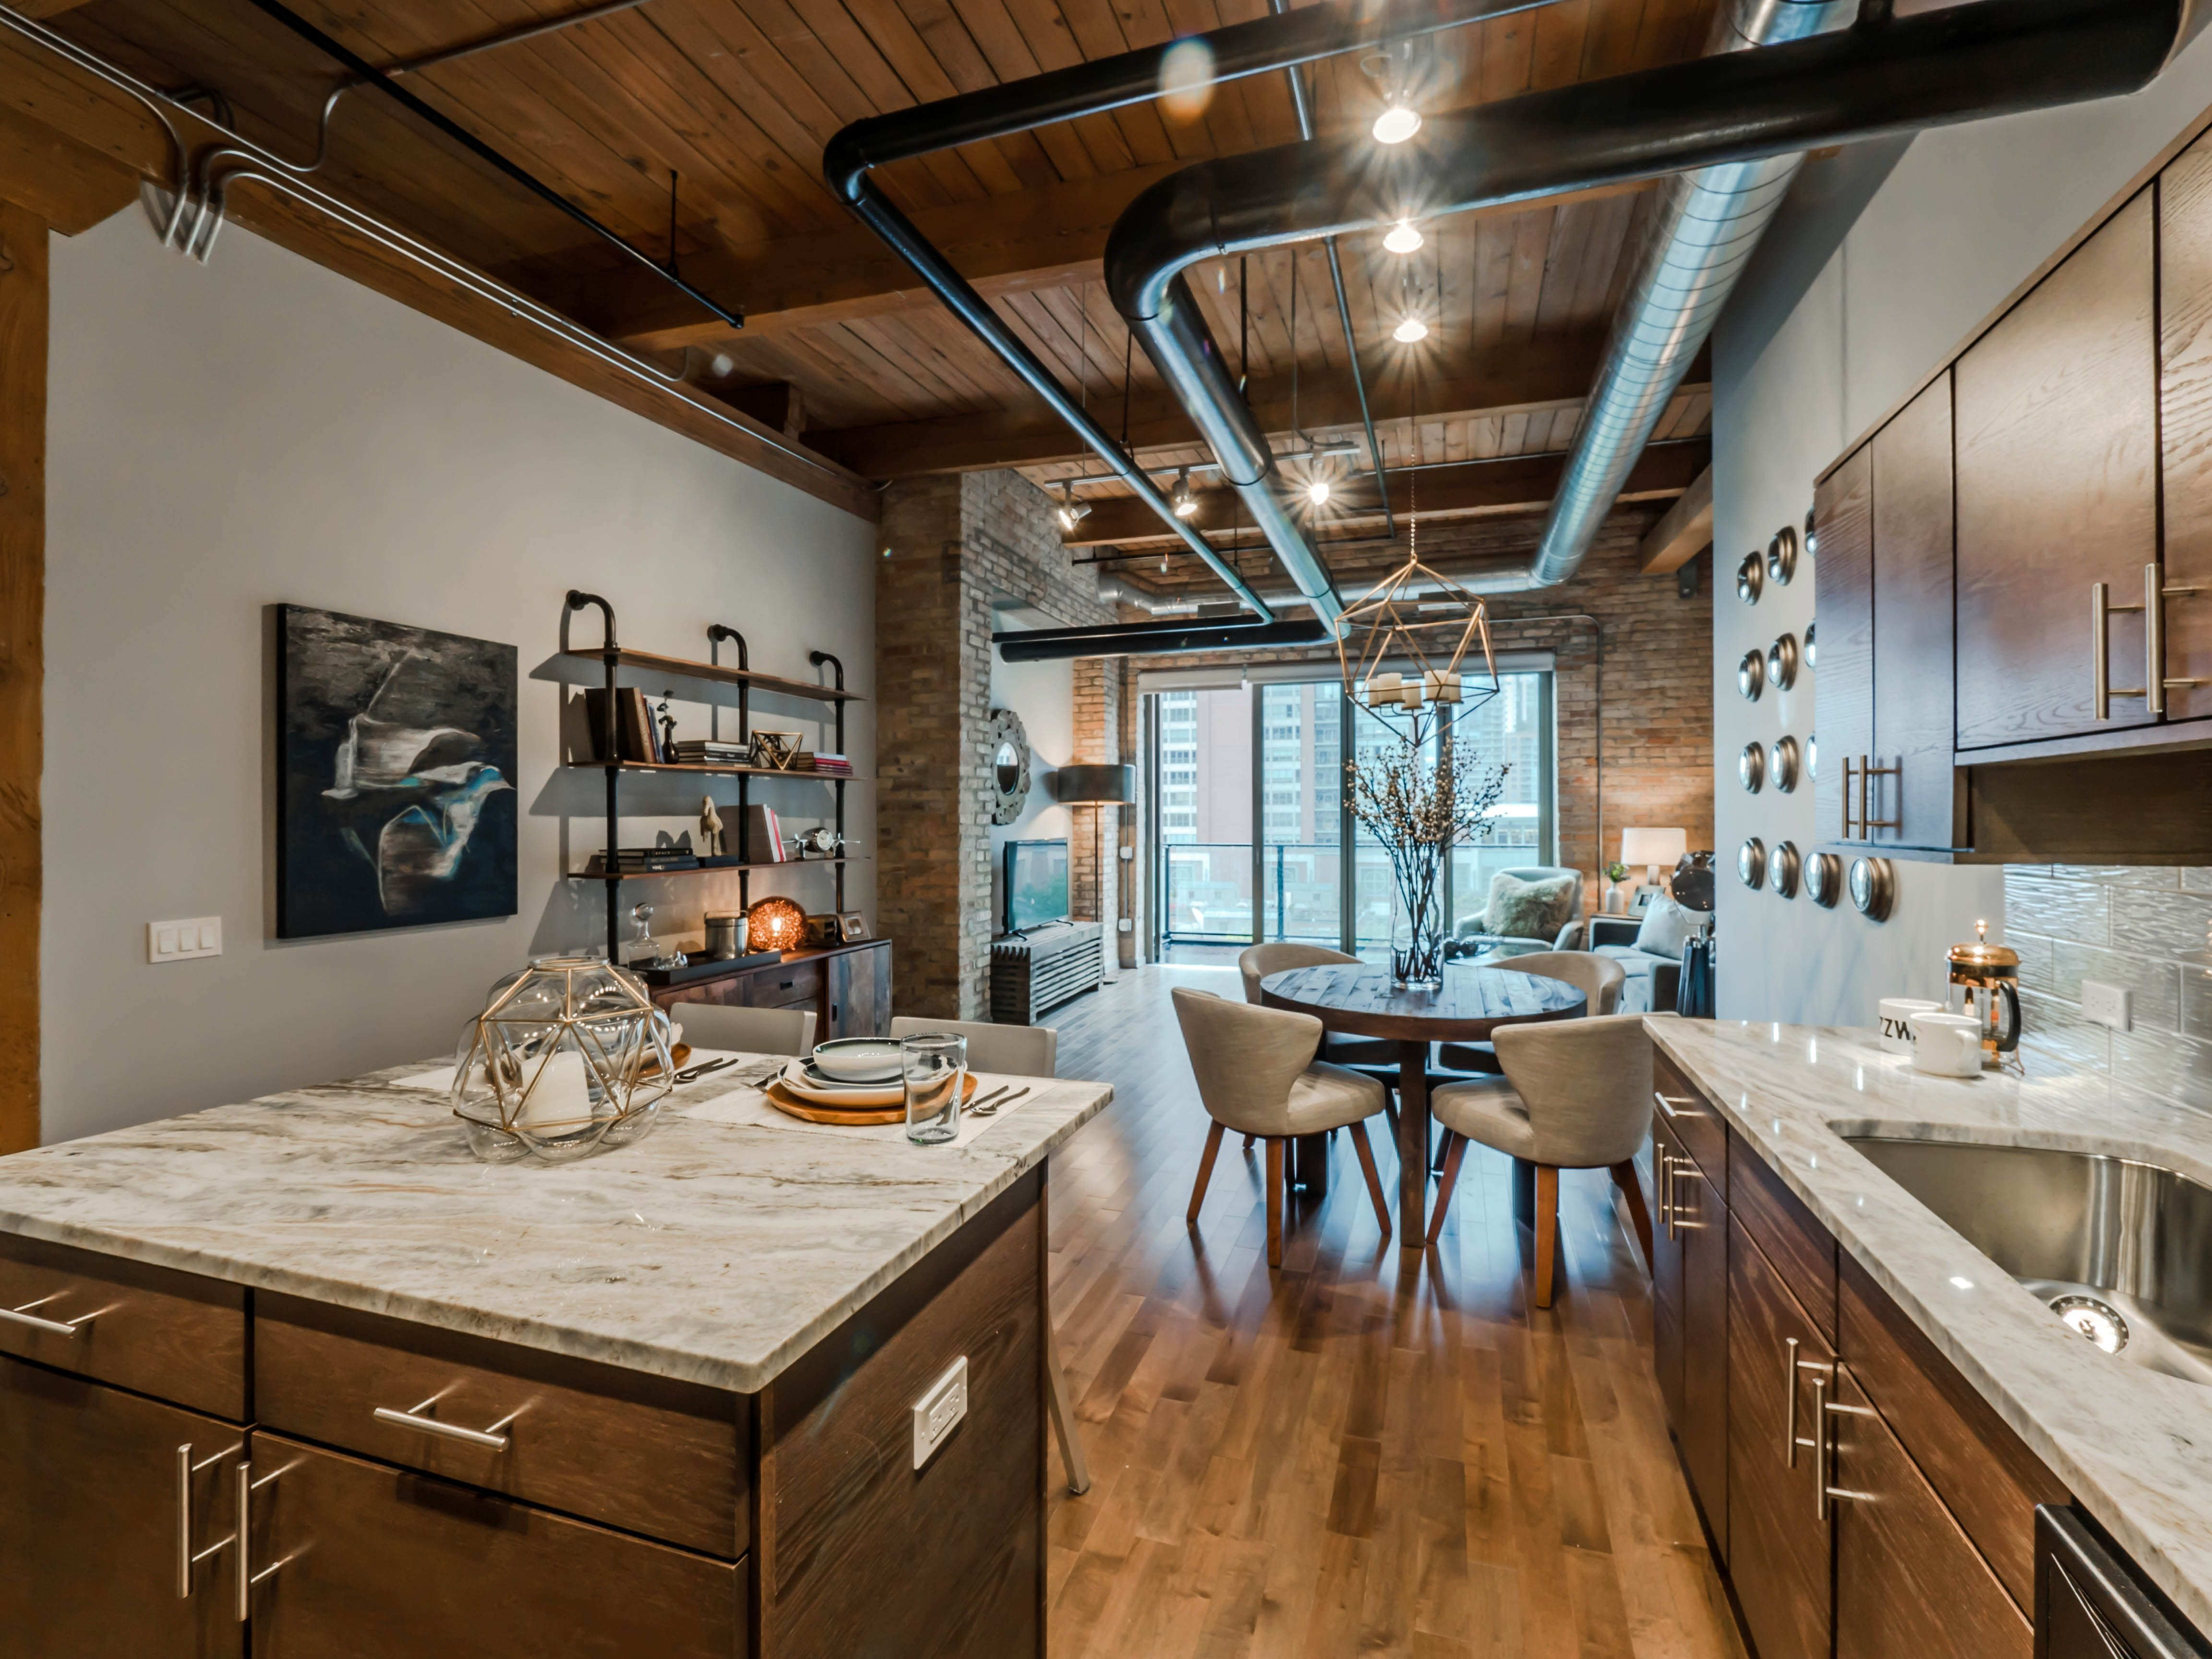 Genial Image Result For Exposed Ductwork Kitchen | Home | Pinterest | Kitchens